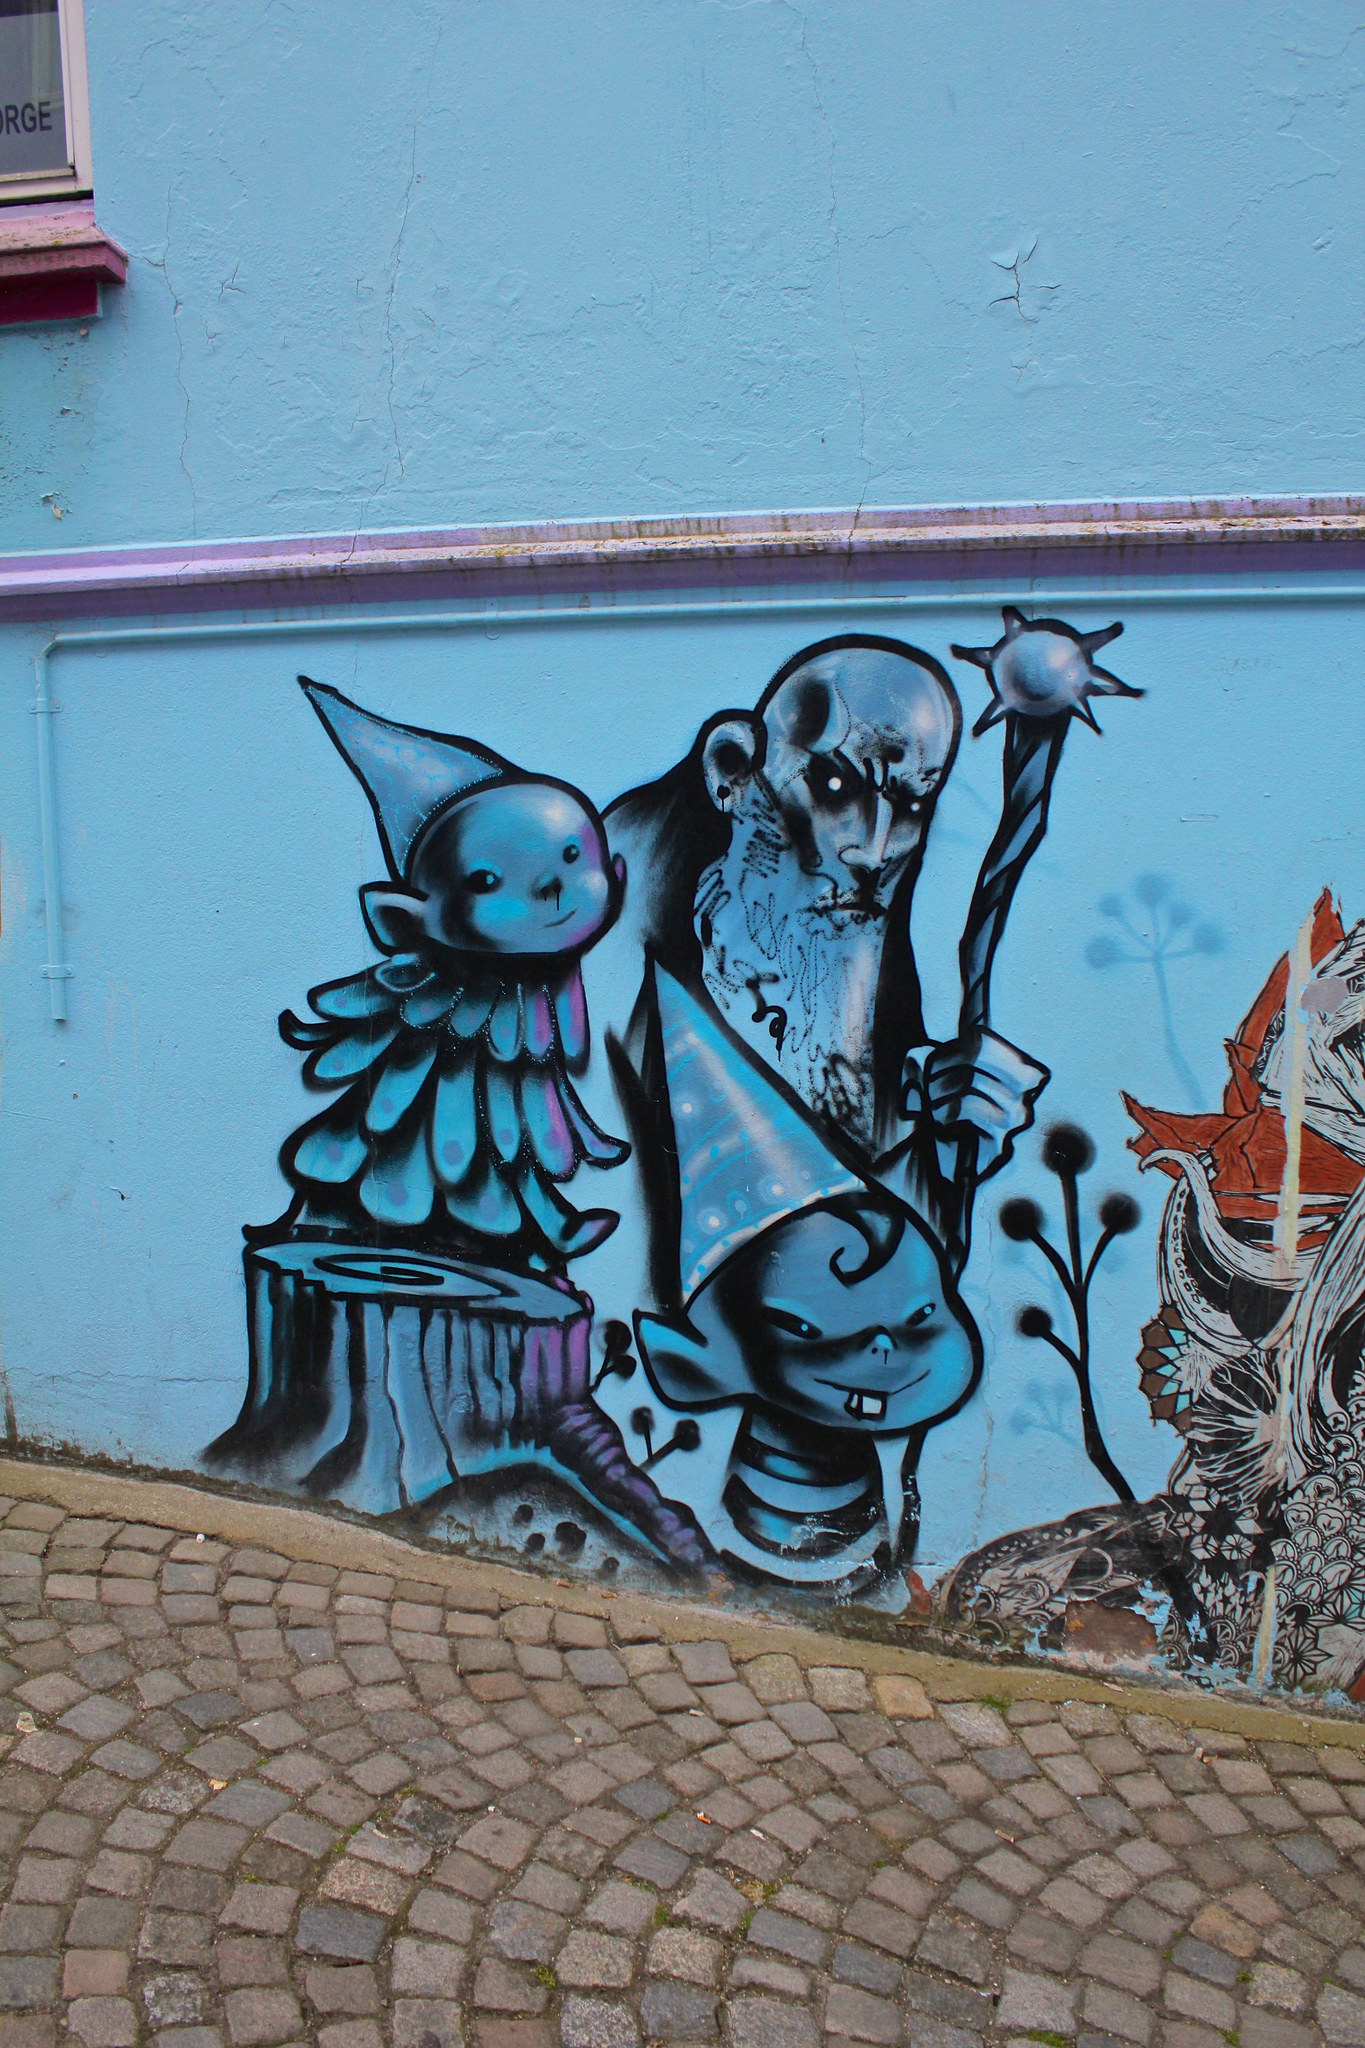 David-Choe-Urban-Art-Nuart-05